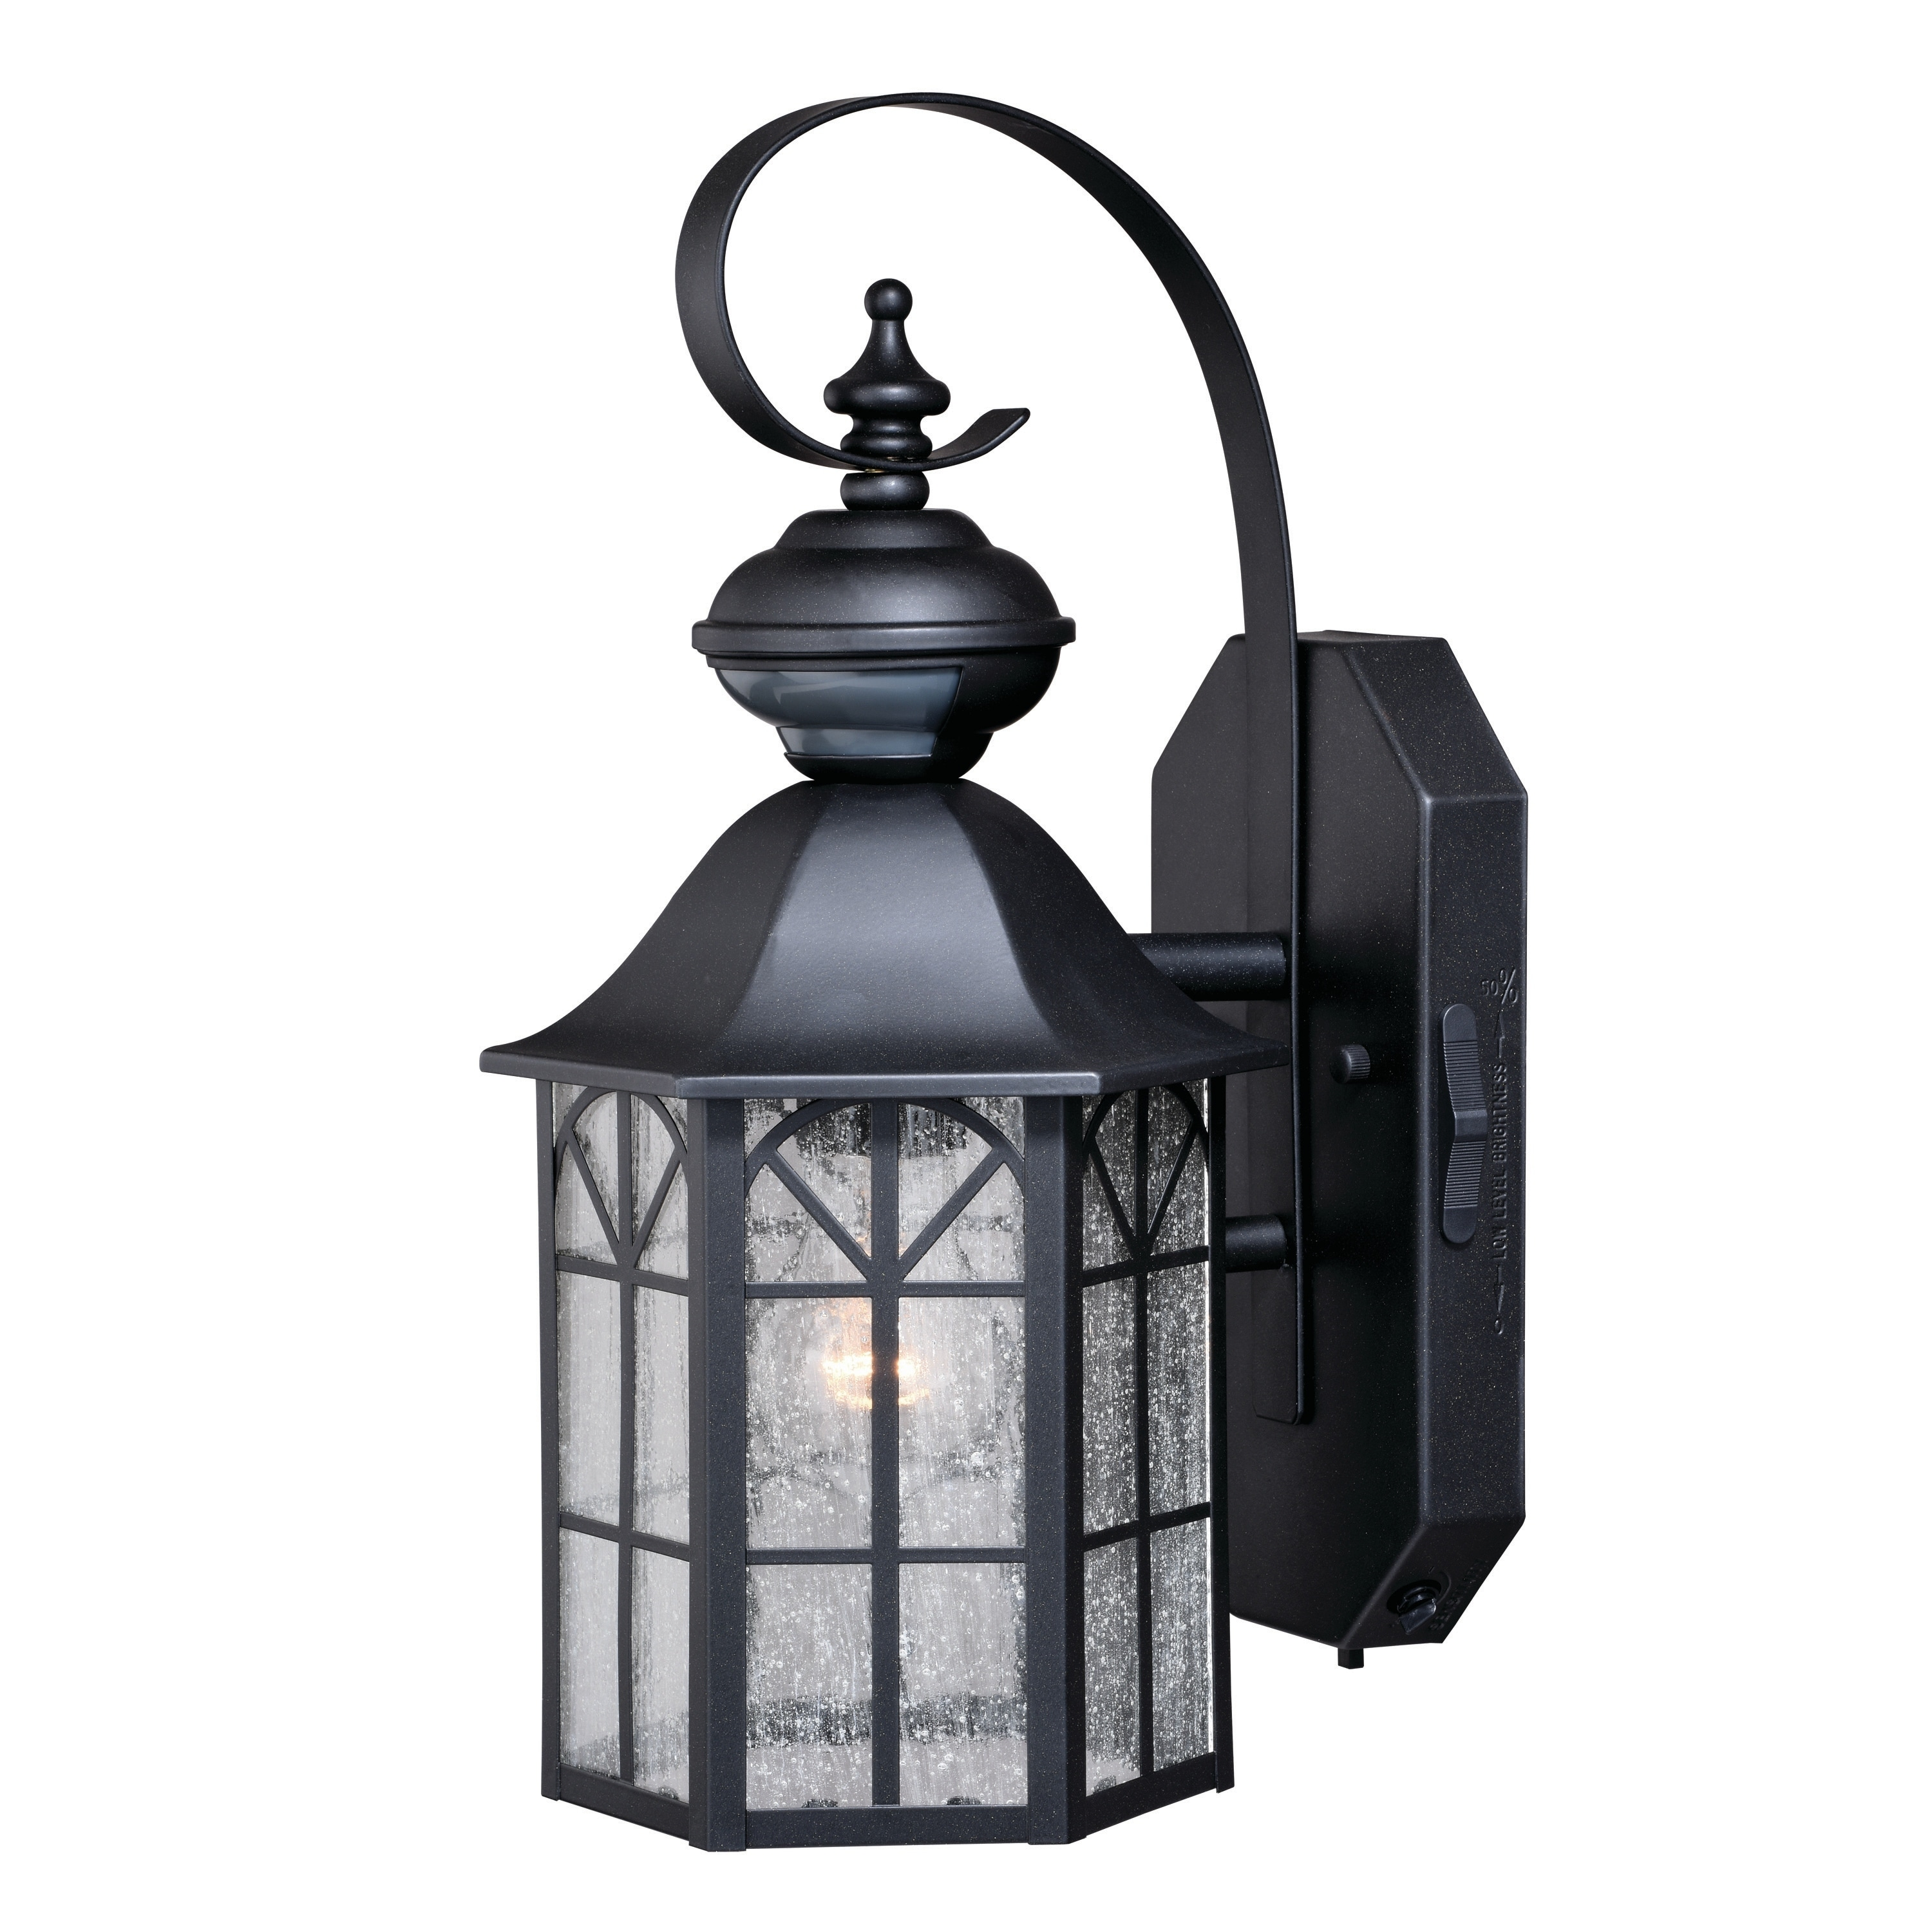 Image of: Shop Tudor Bronze Motion Sensor Dusk To Dawn Outdoor Wall Light 7 In W X 14 75 In H X 8 5 In D Overstock 20877009